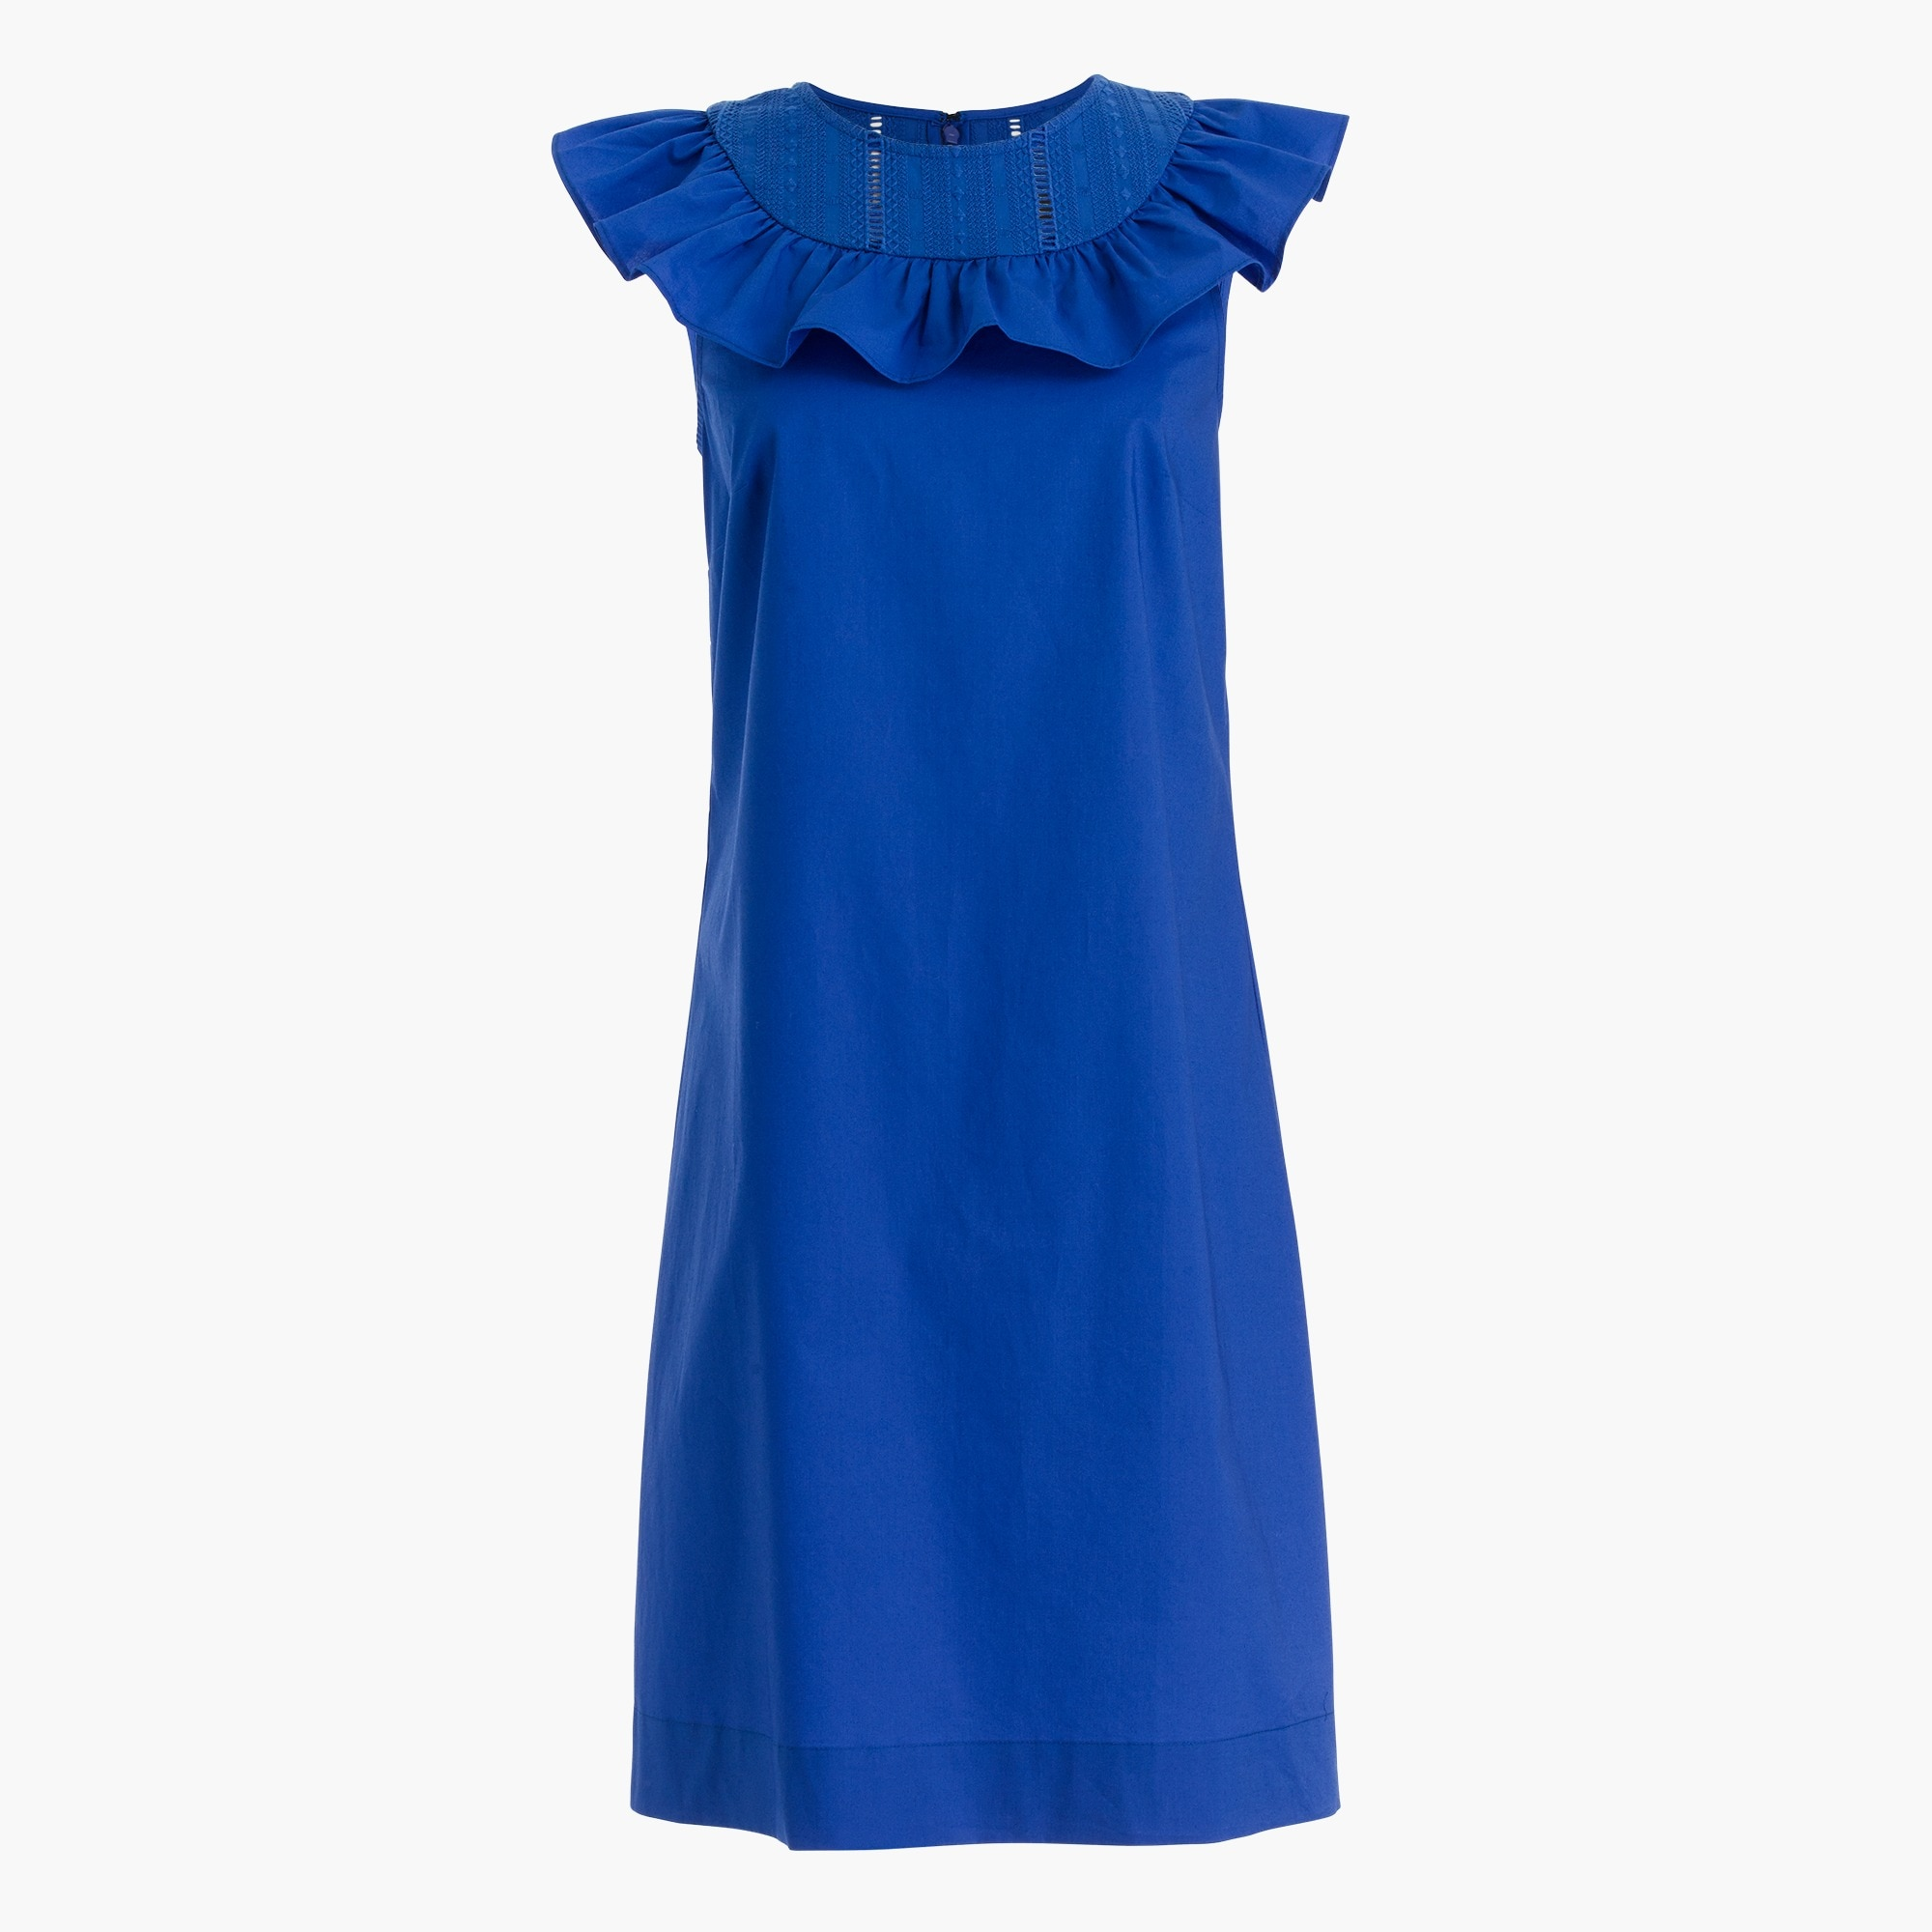 petite ruffle-neck dress : women dresses